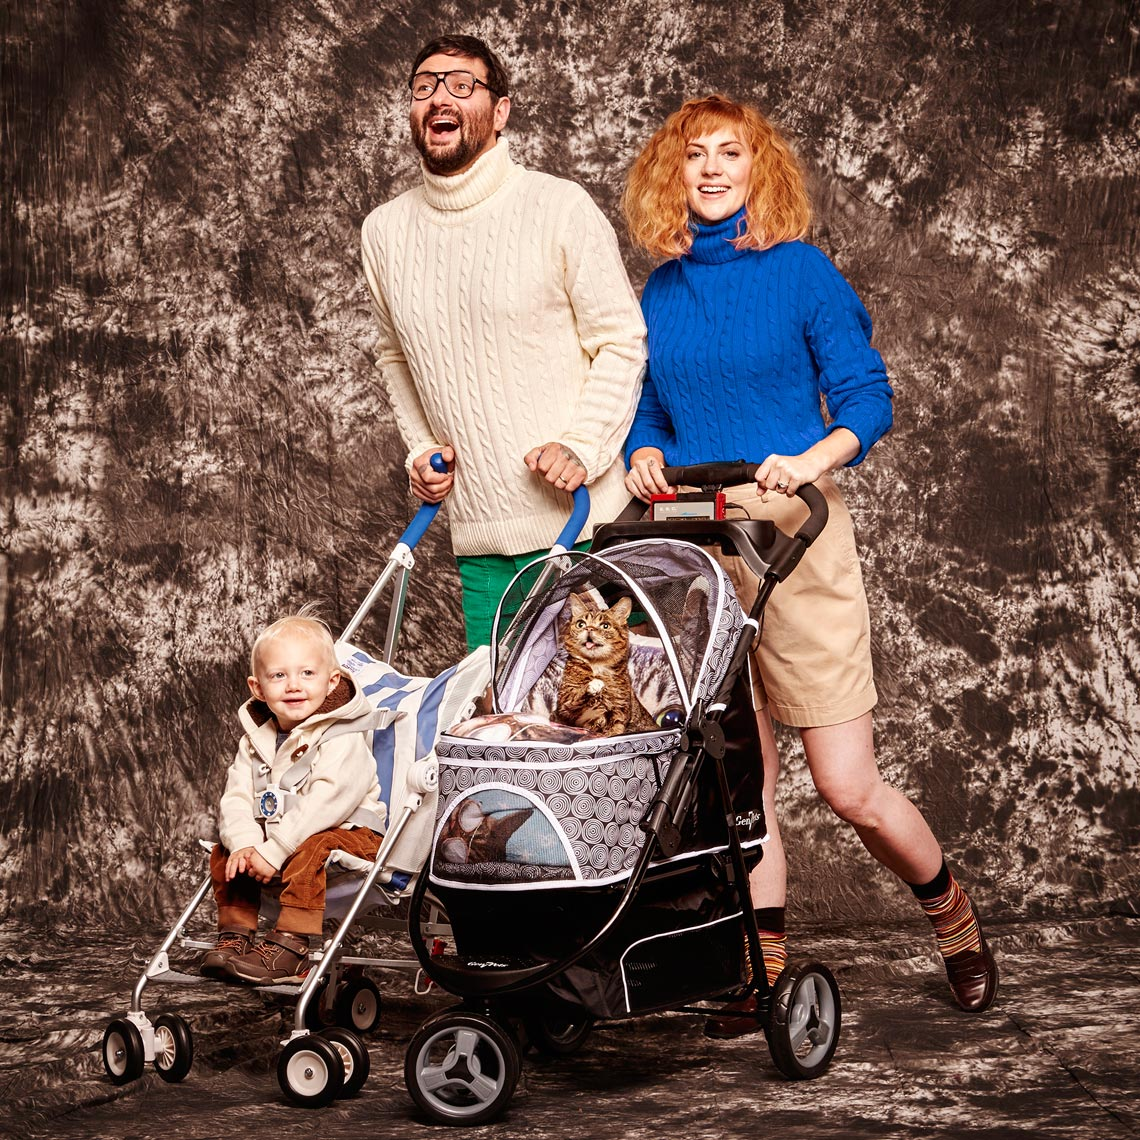 Lil bub awkward family photo stroller